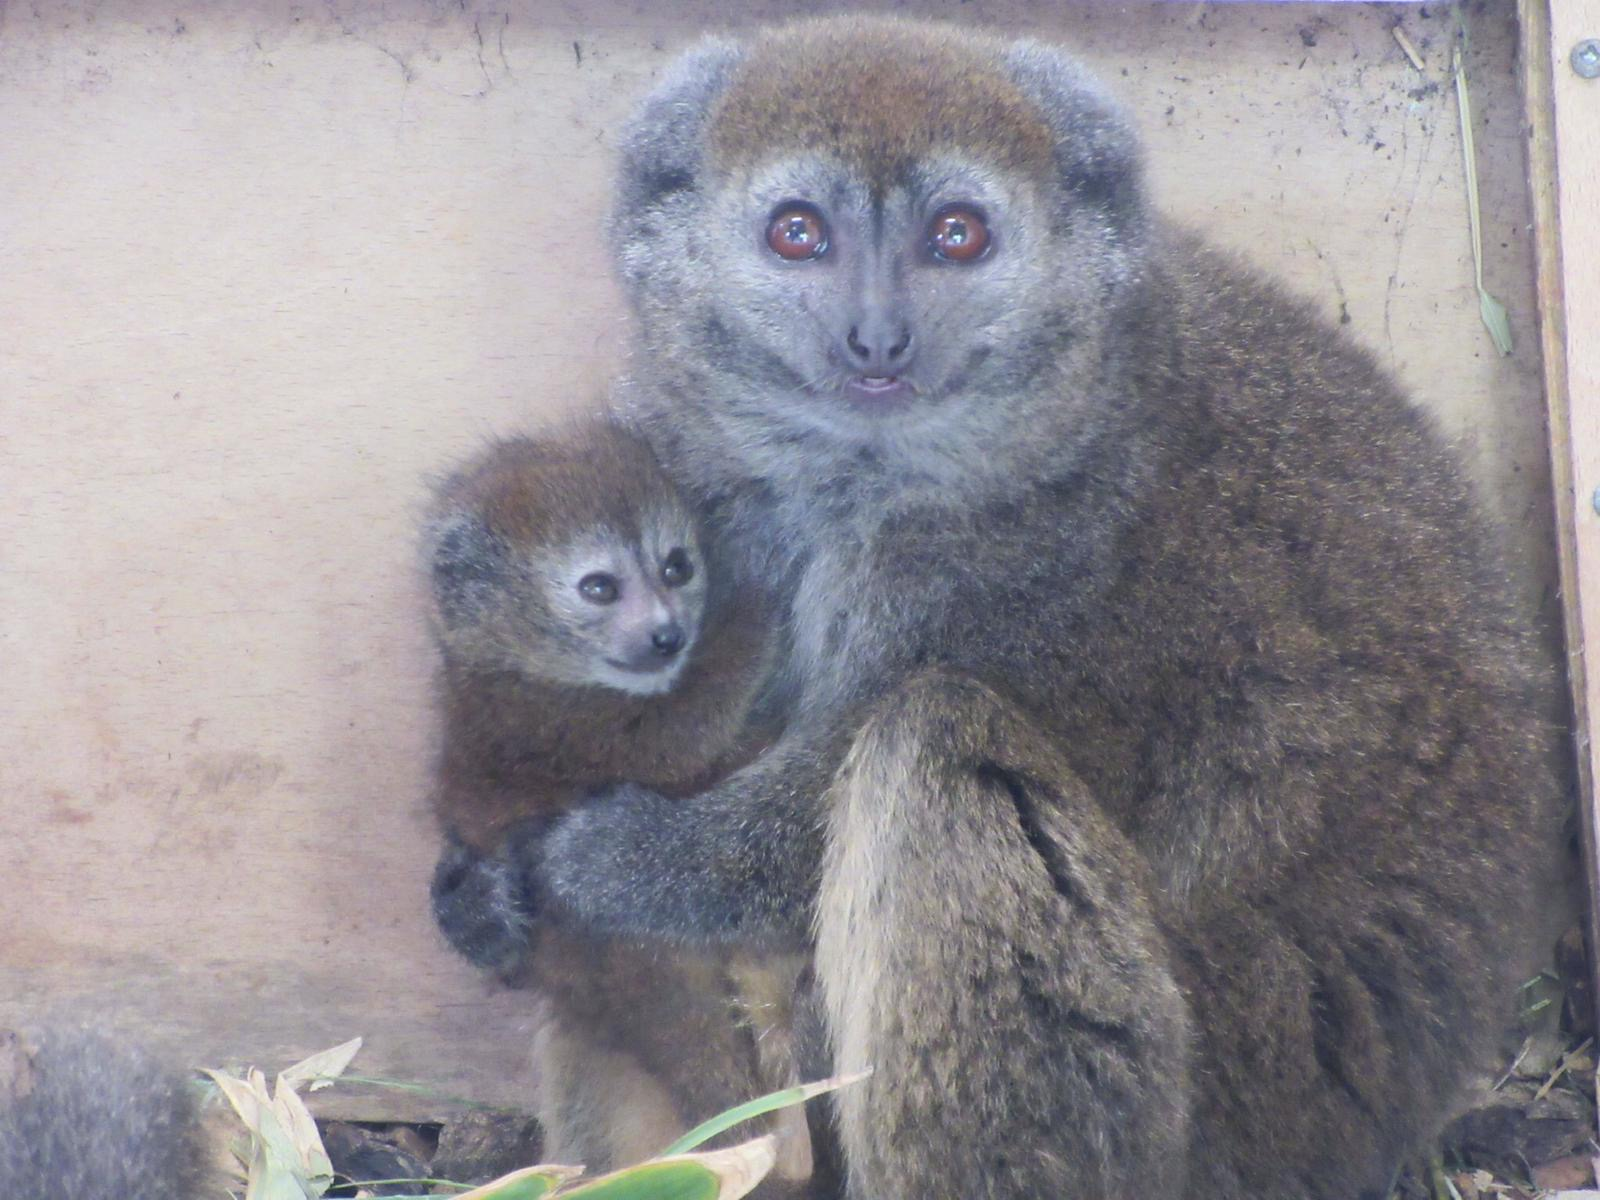 The two-week-old lemur and their mother Tiana (Wild Place Project/PA).